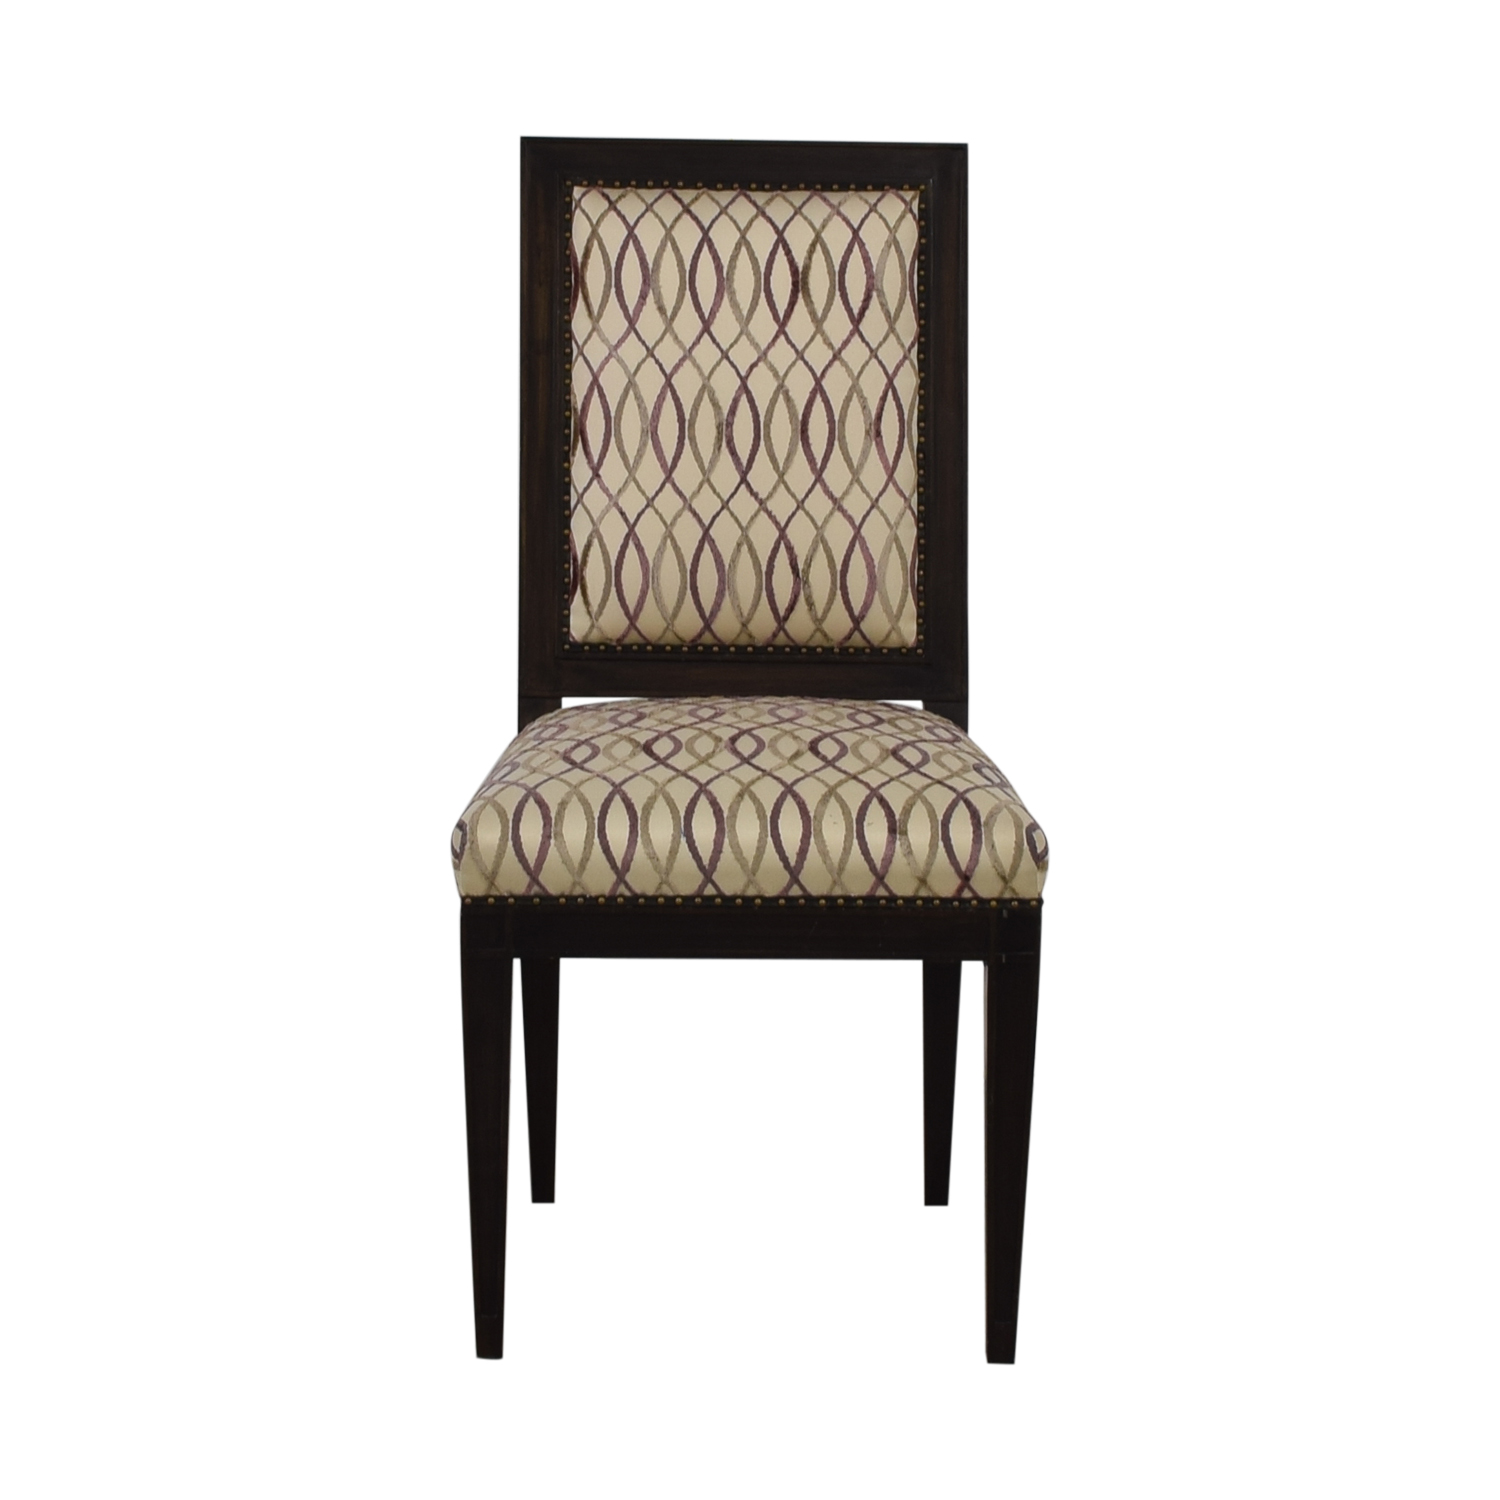 buy Furniture Masters Beige and Lavender Accent Chair Furniture Masters Chairs